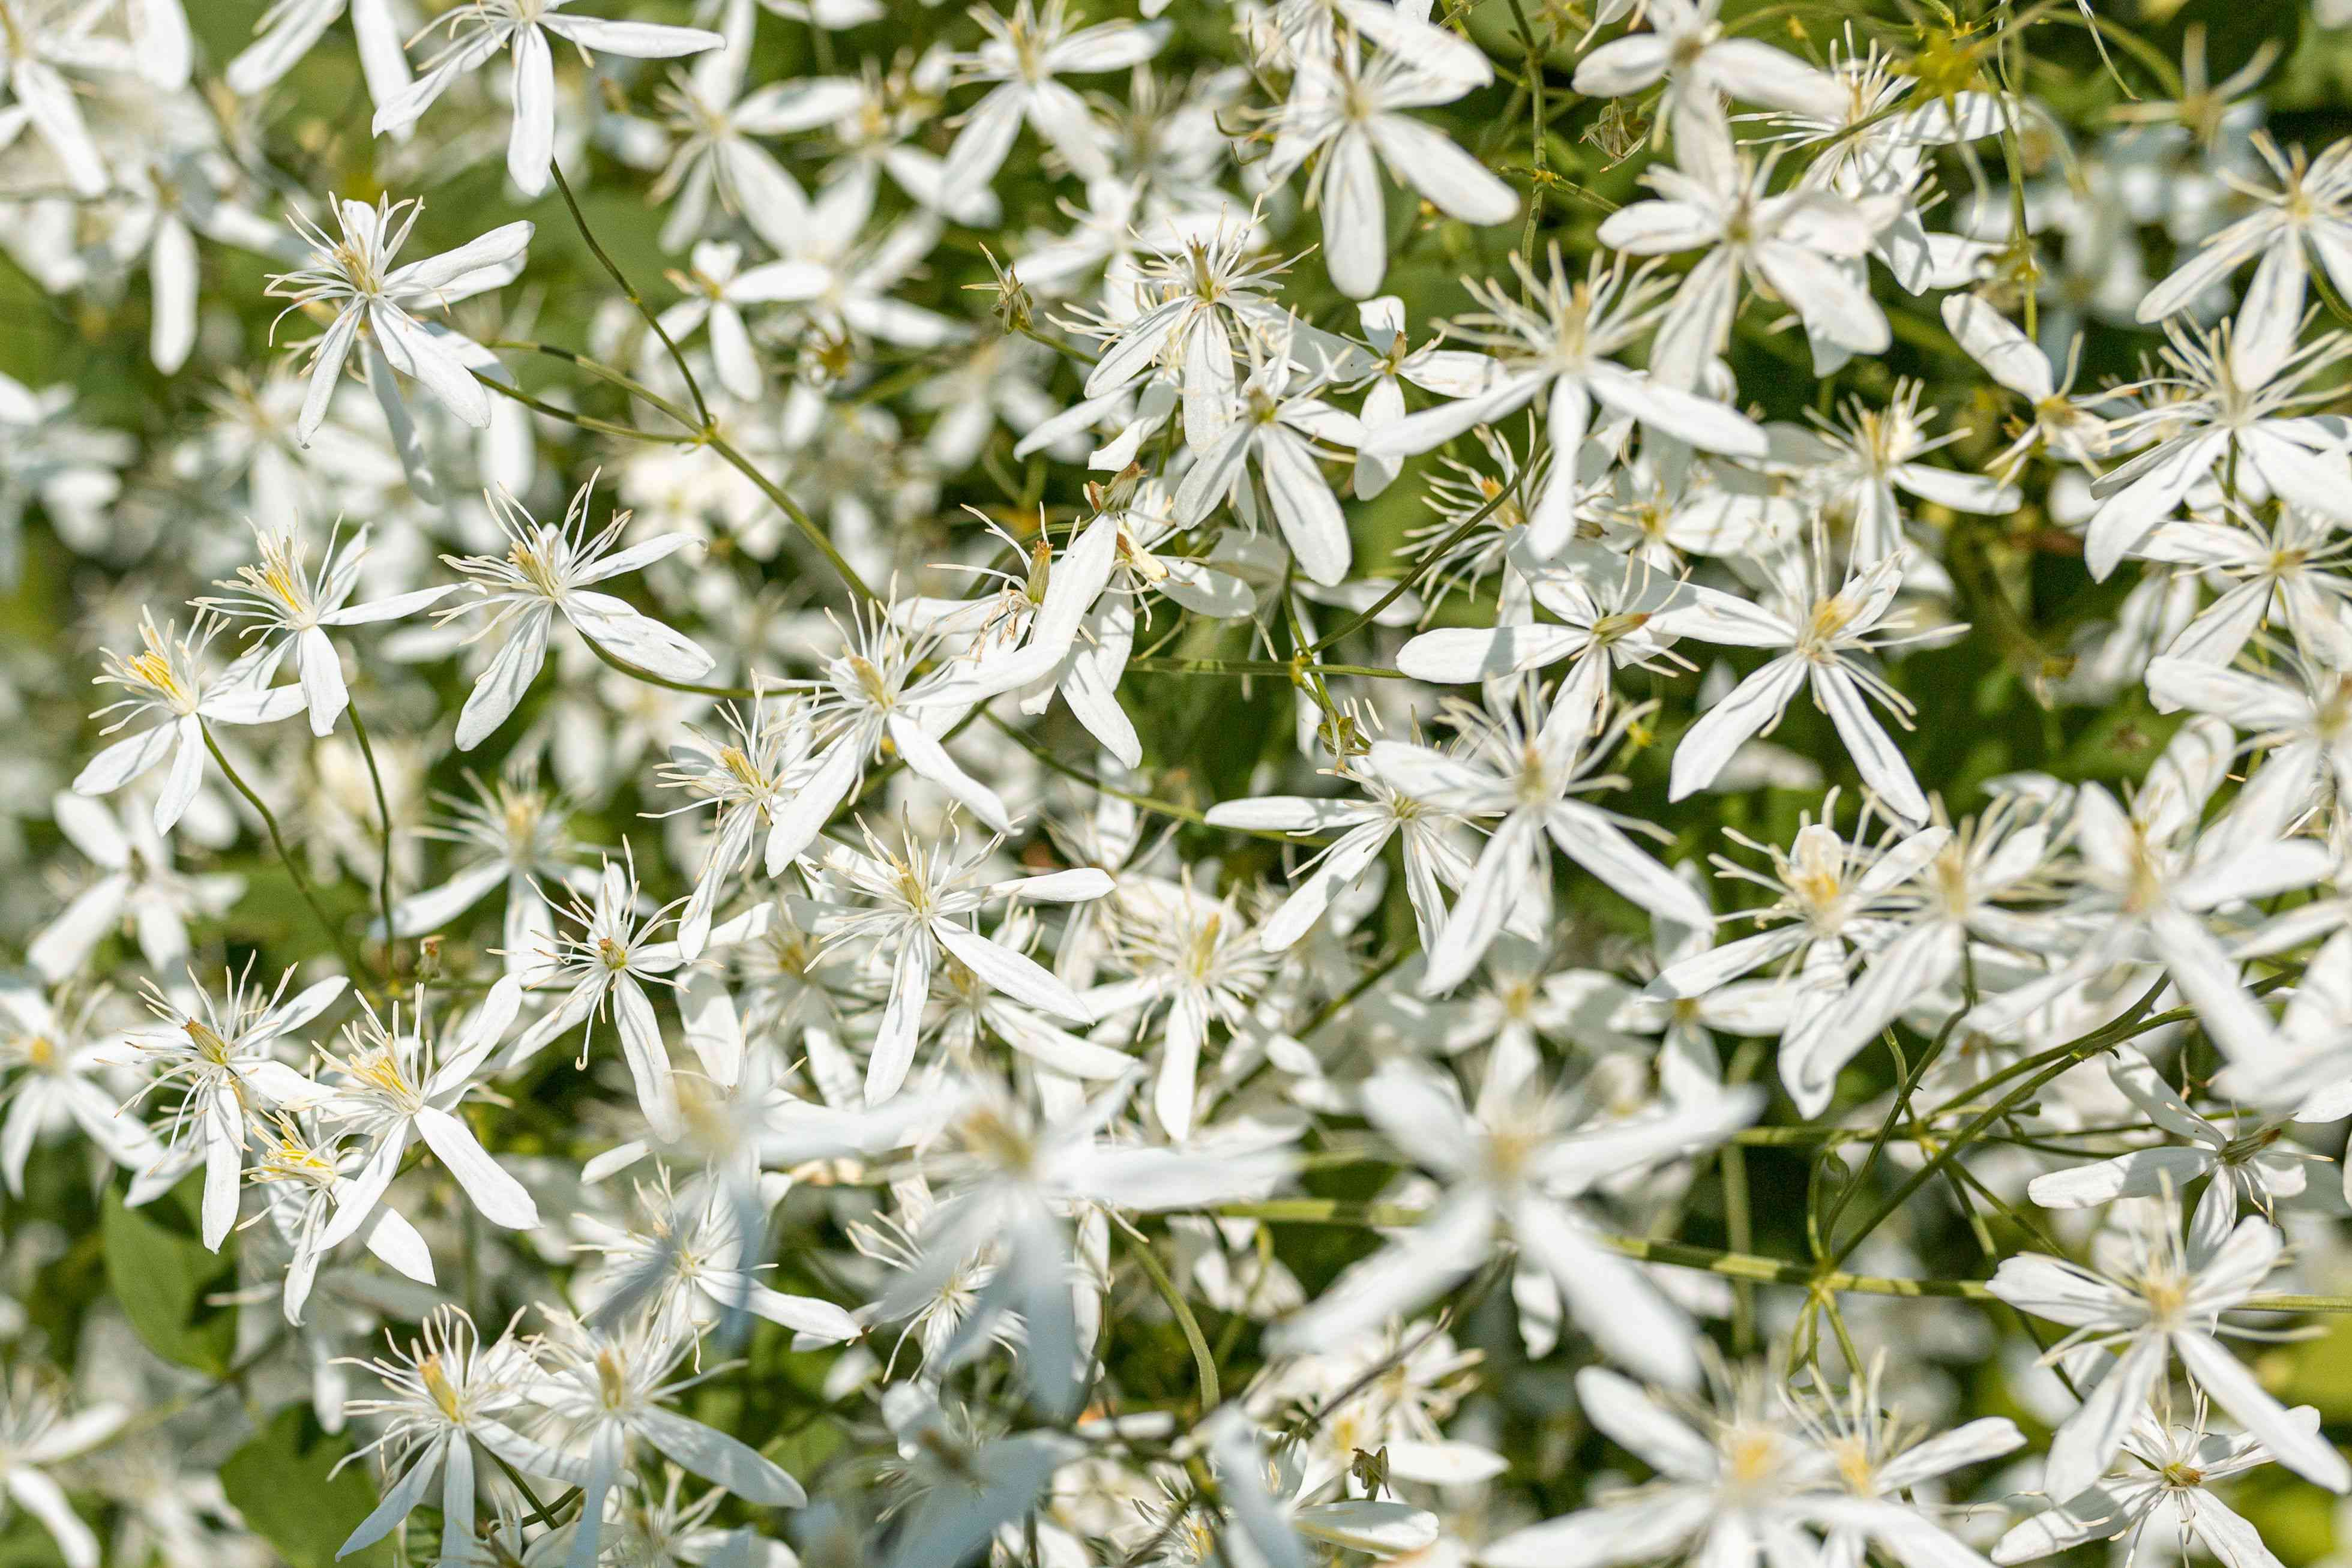 Sweet autumn clematis vine with small white flowers and fuzzy seed heads closeup